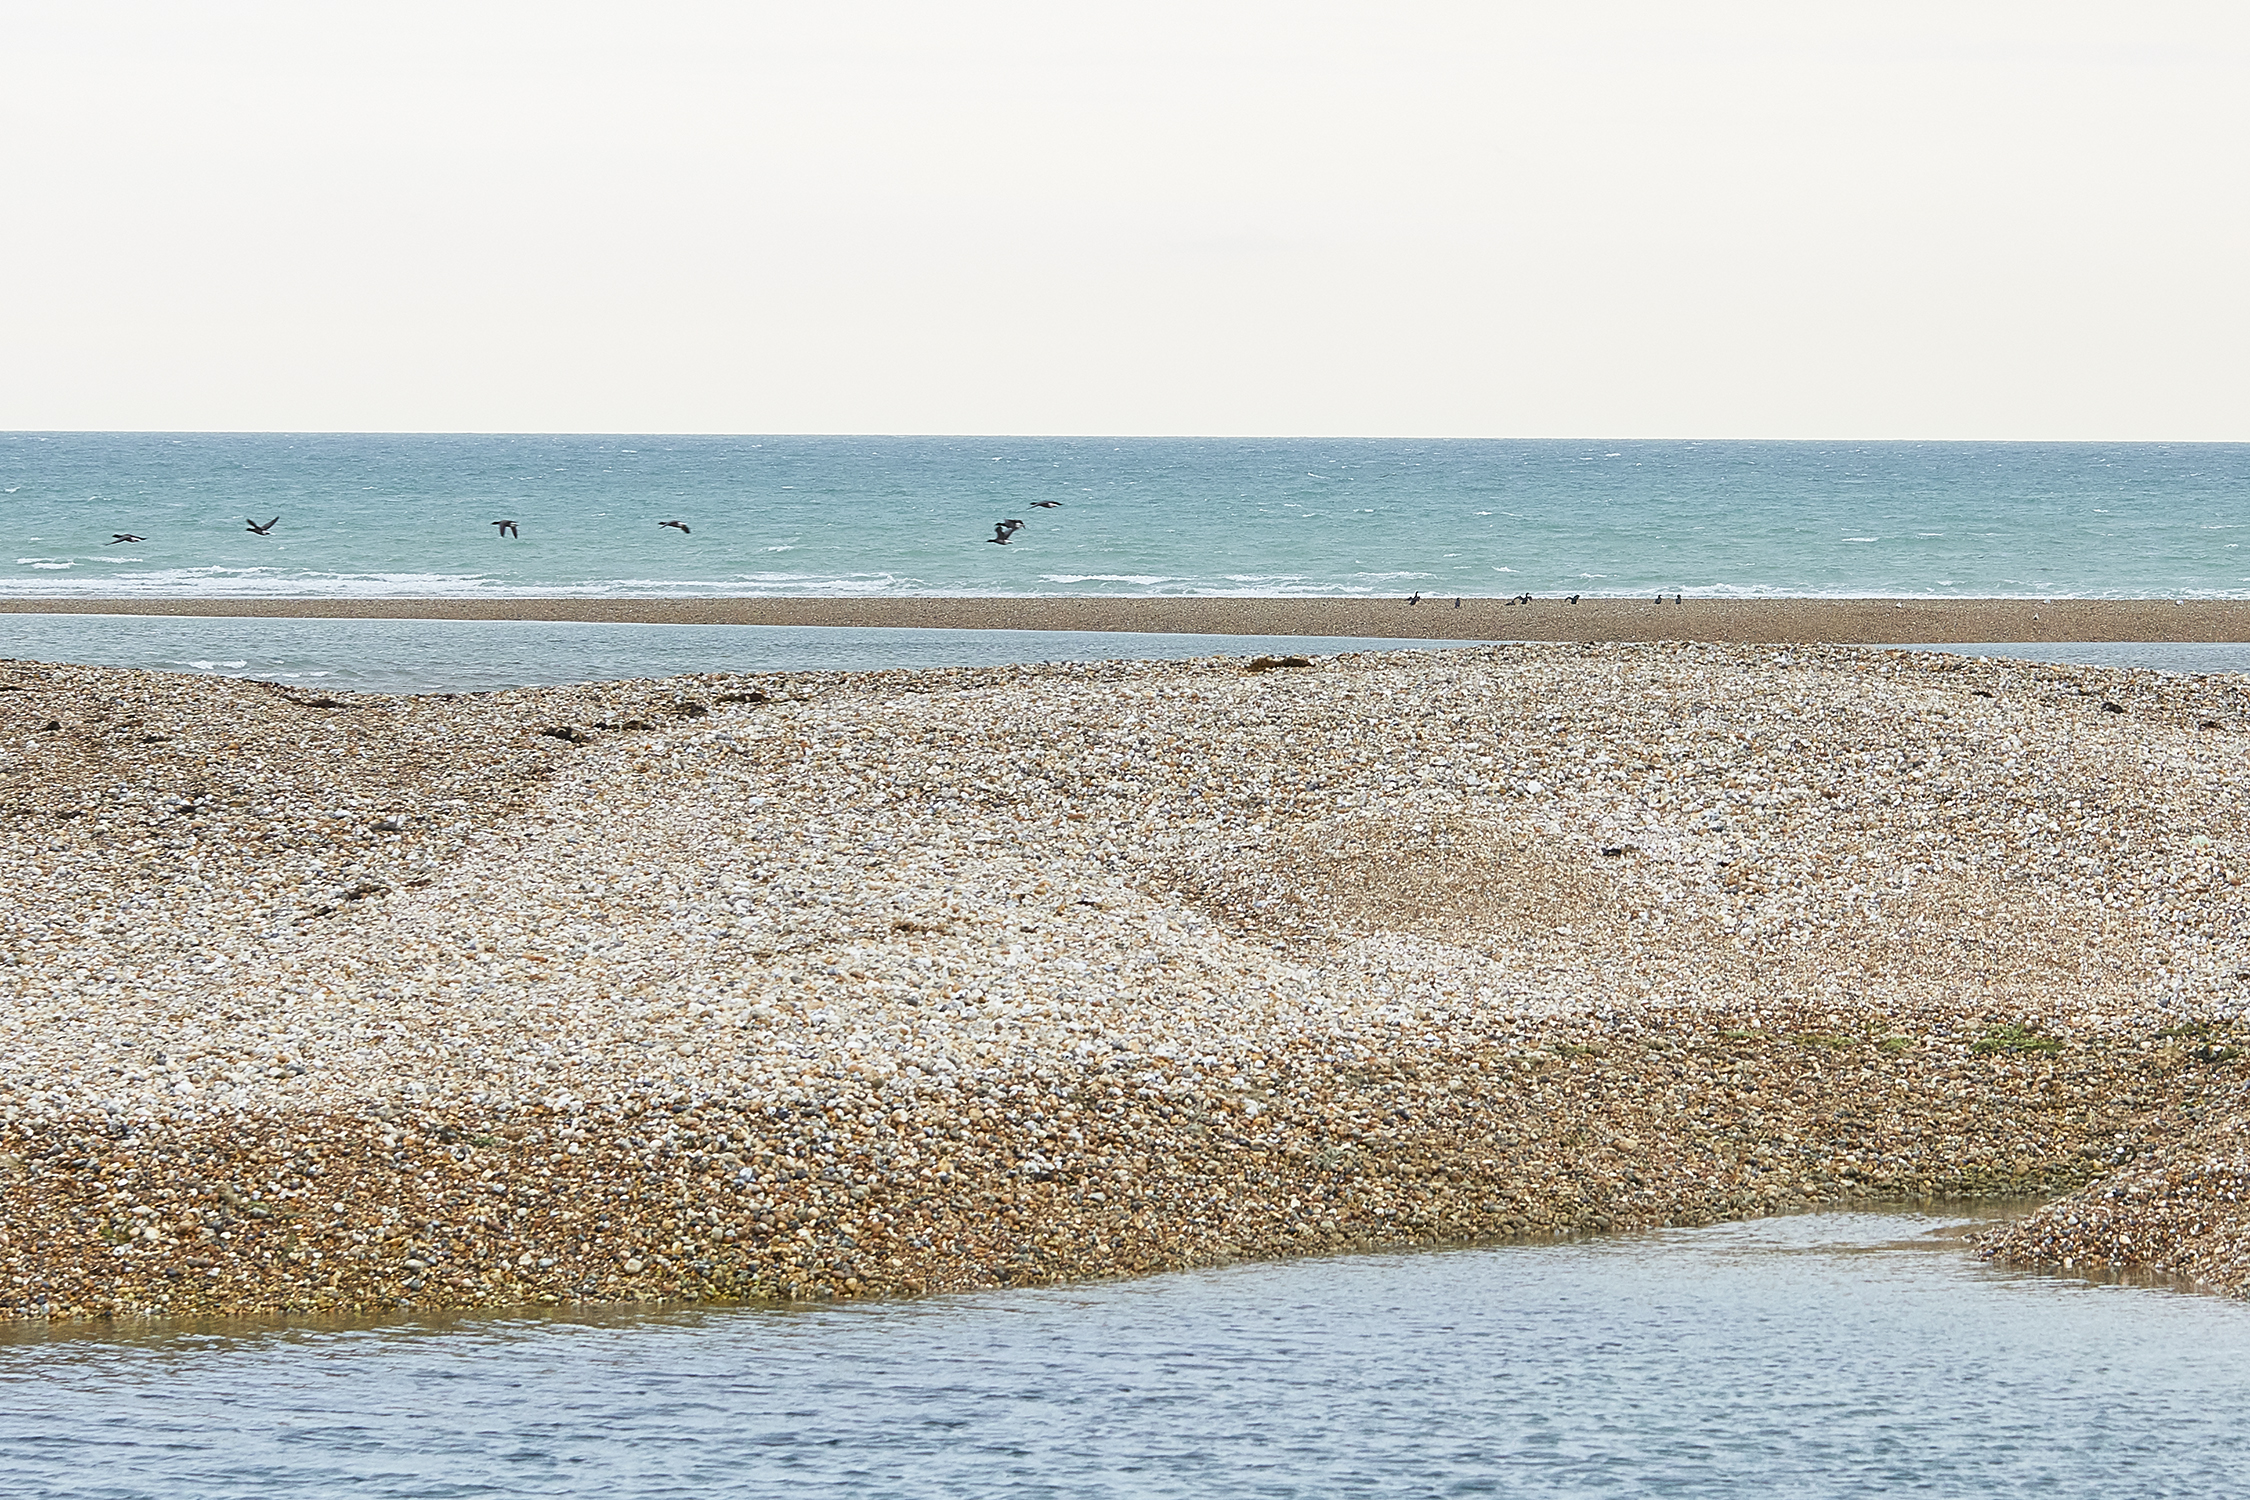 Pagham Beach - The Bolthole opens directly onto the beach